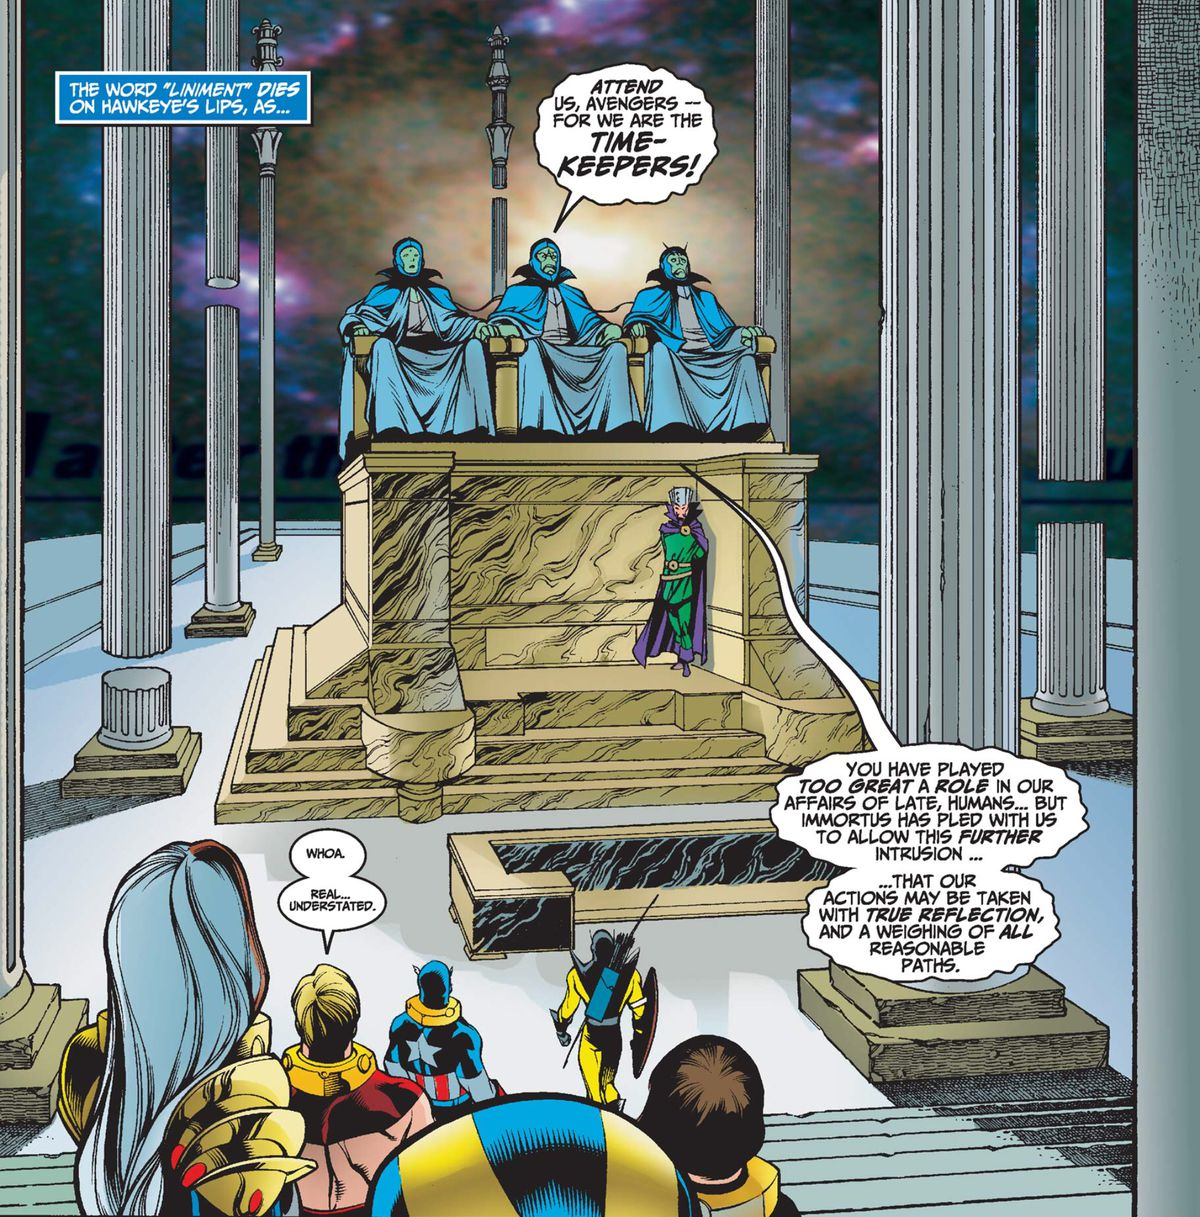 The Avengers sit on a high platform accompanied by Immortus and approach the appearance of three timekeepers in robes.